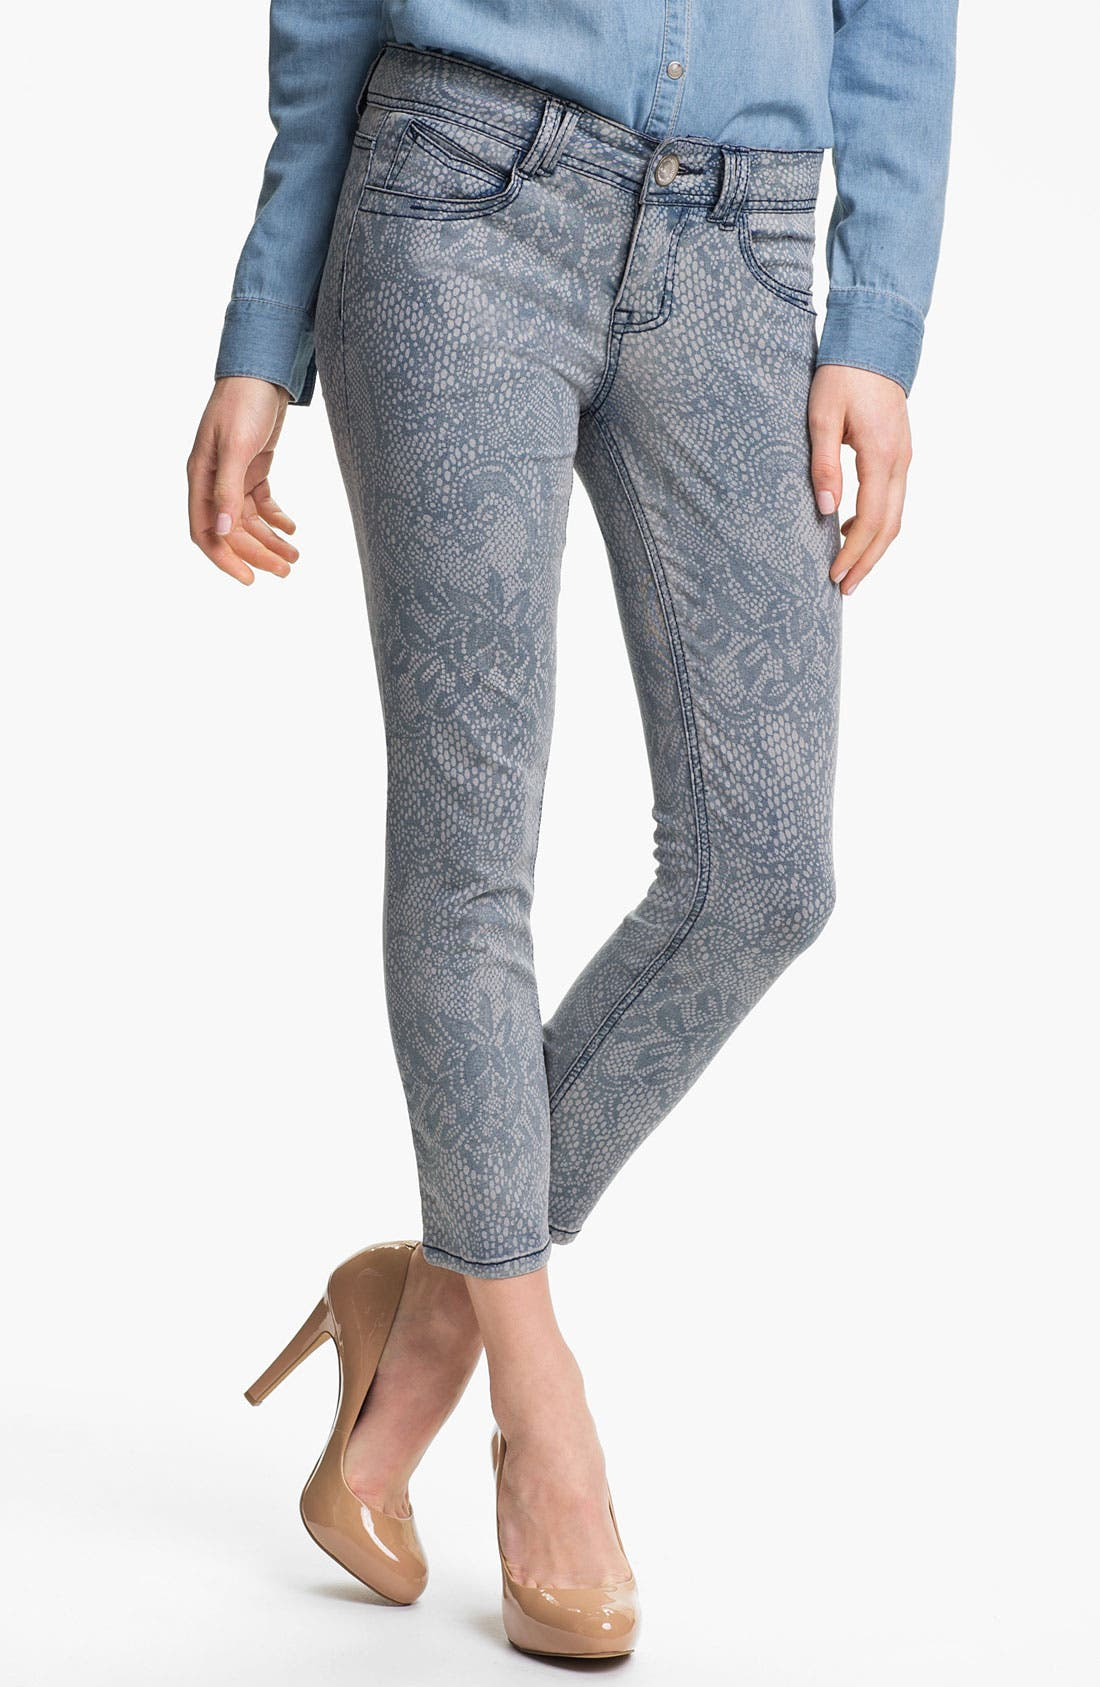 Alternate Image 1 Selected - Wit & Wisdom Lace Print Crop Jeans (Indigo) (Nordstrom Exclusive)